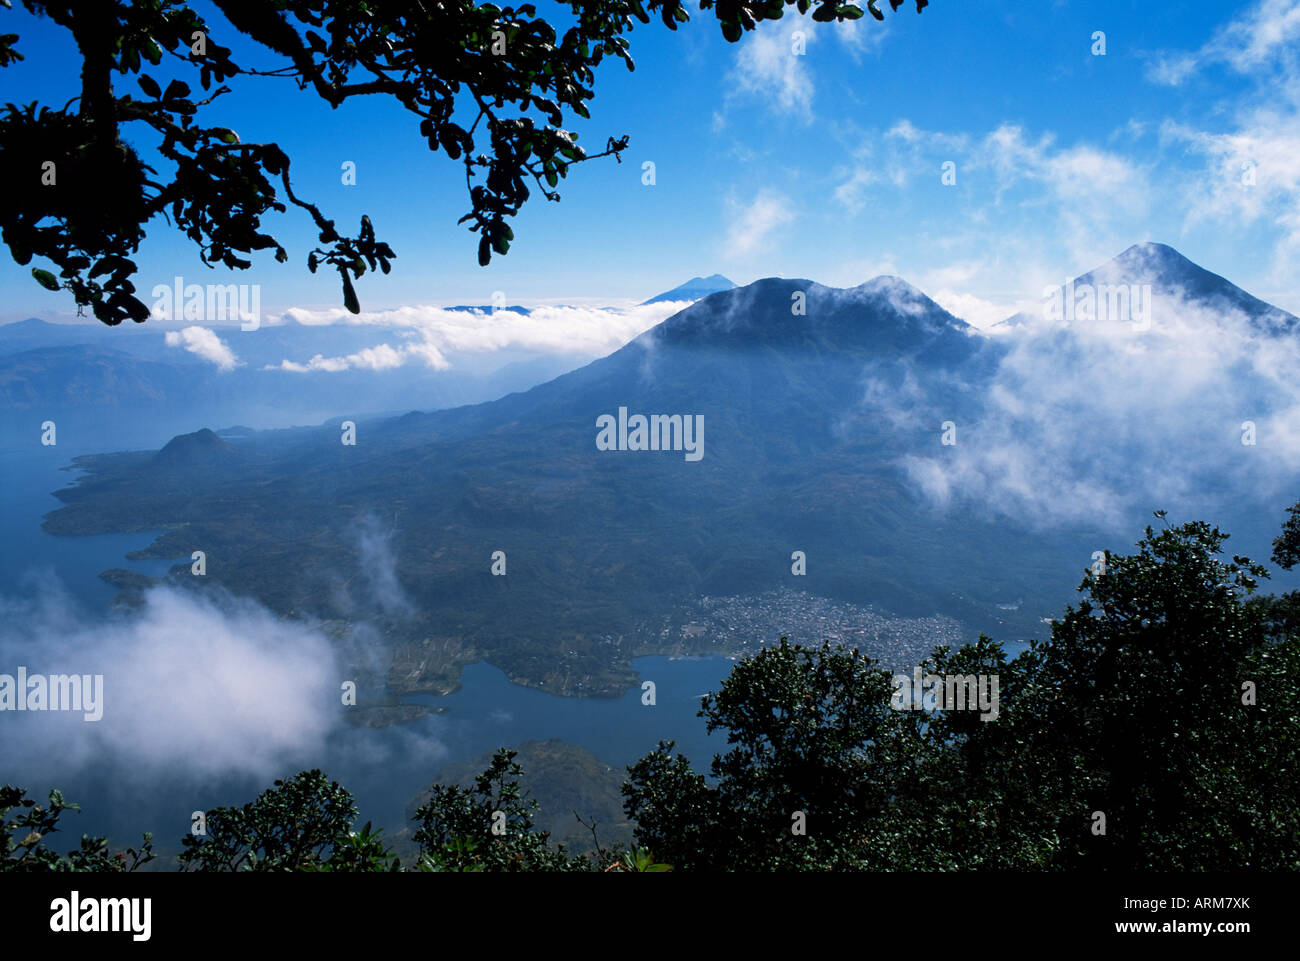 View of lake and town of Santiago, Lago Atitlan (Lake Atitlan), Guatemala, Central America - Stock Image